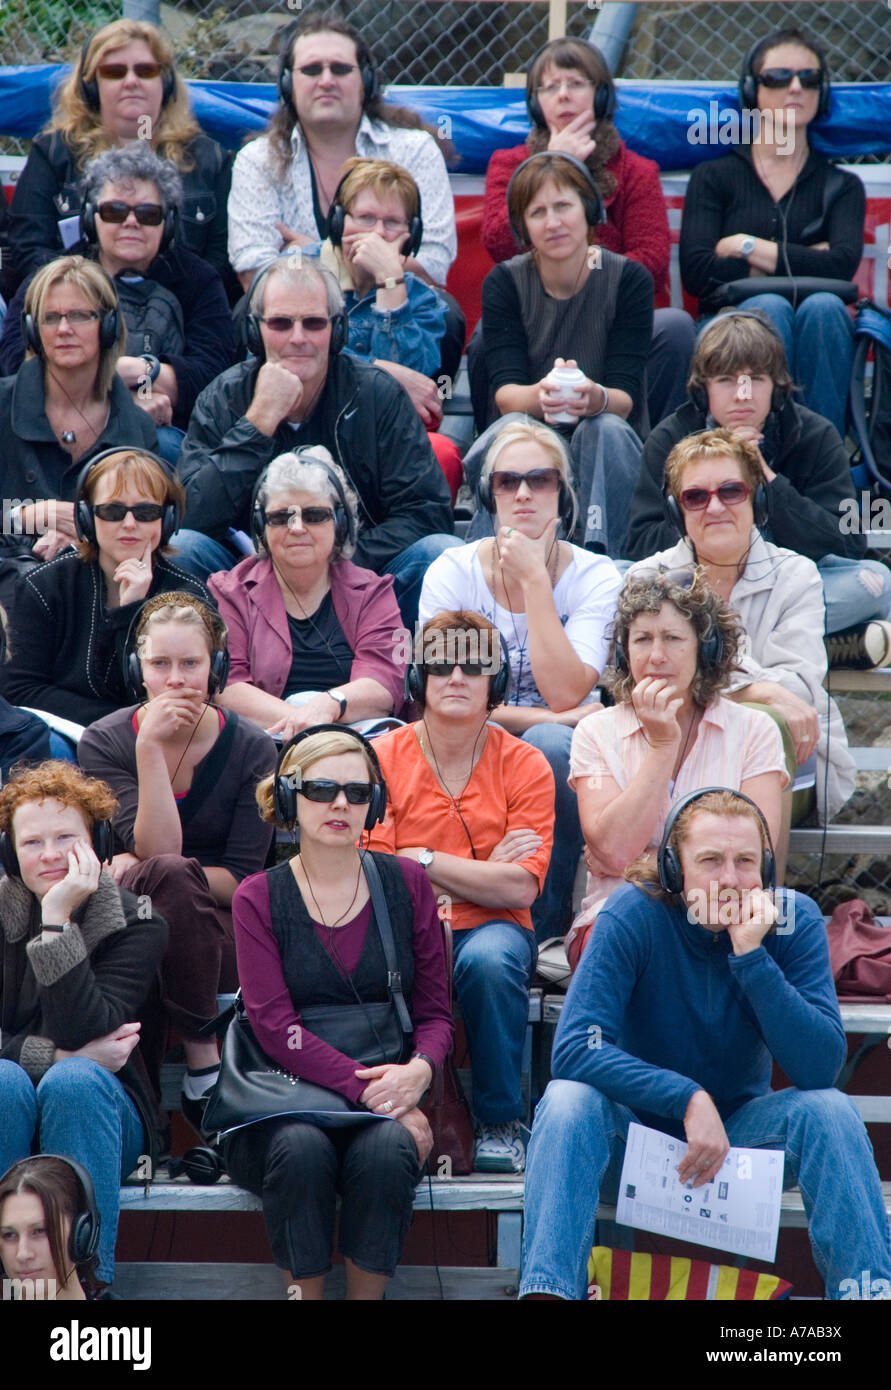 The audience at an open air theatre experience listening intently through wearing headphones - Stock Image